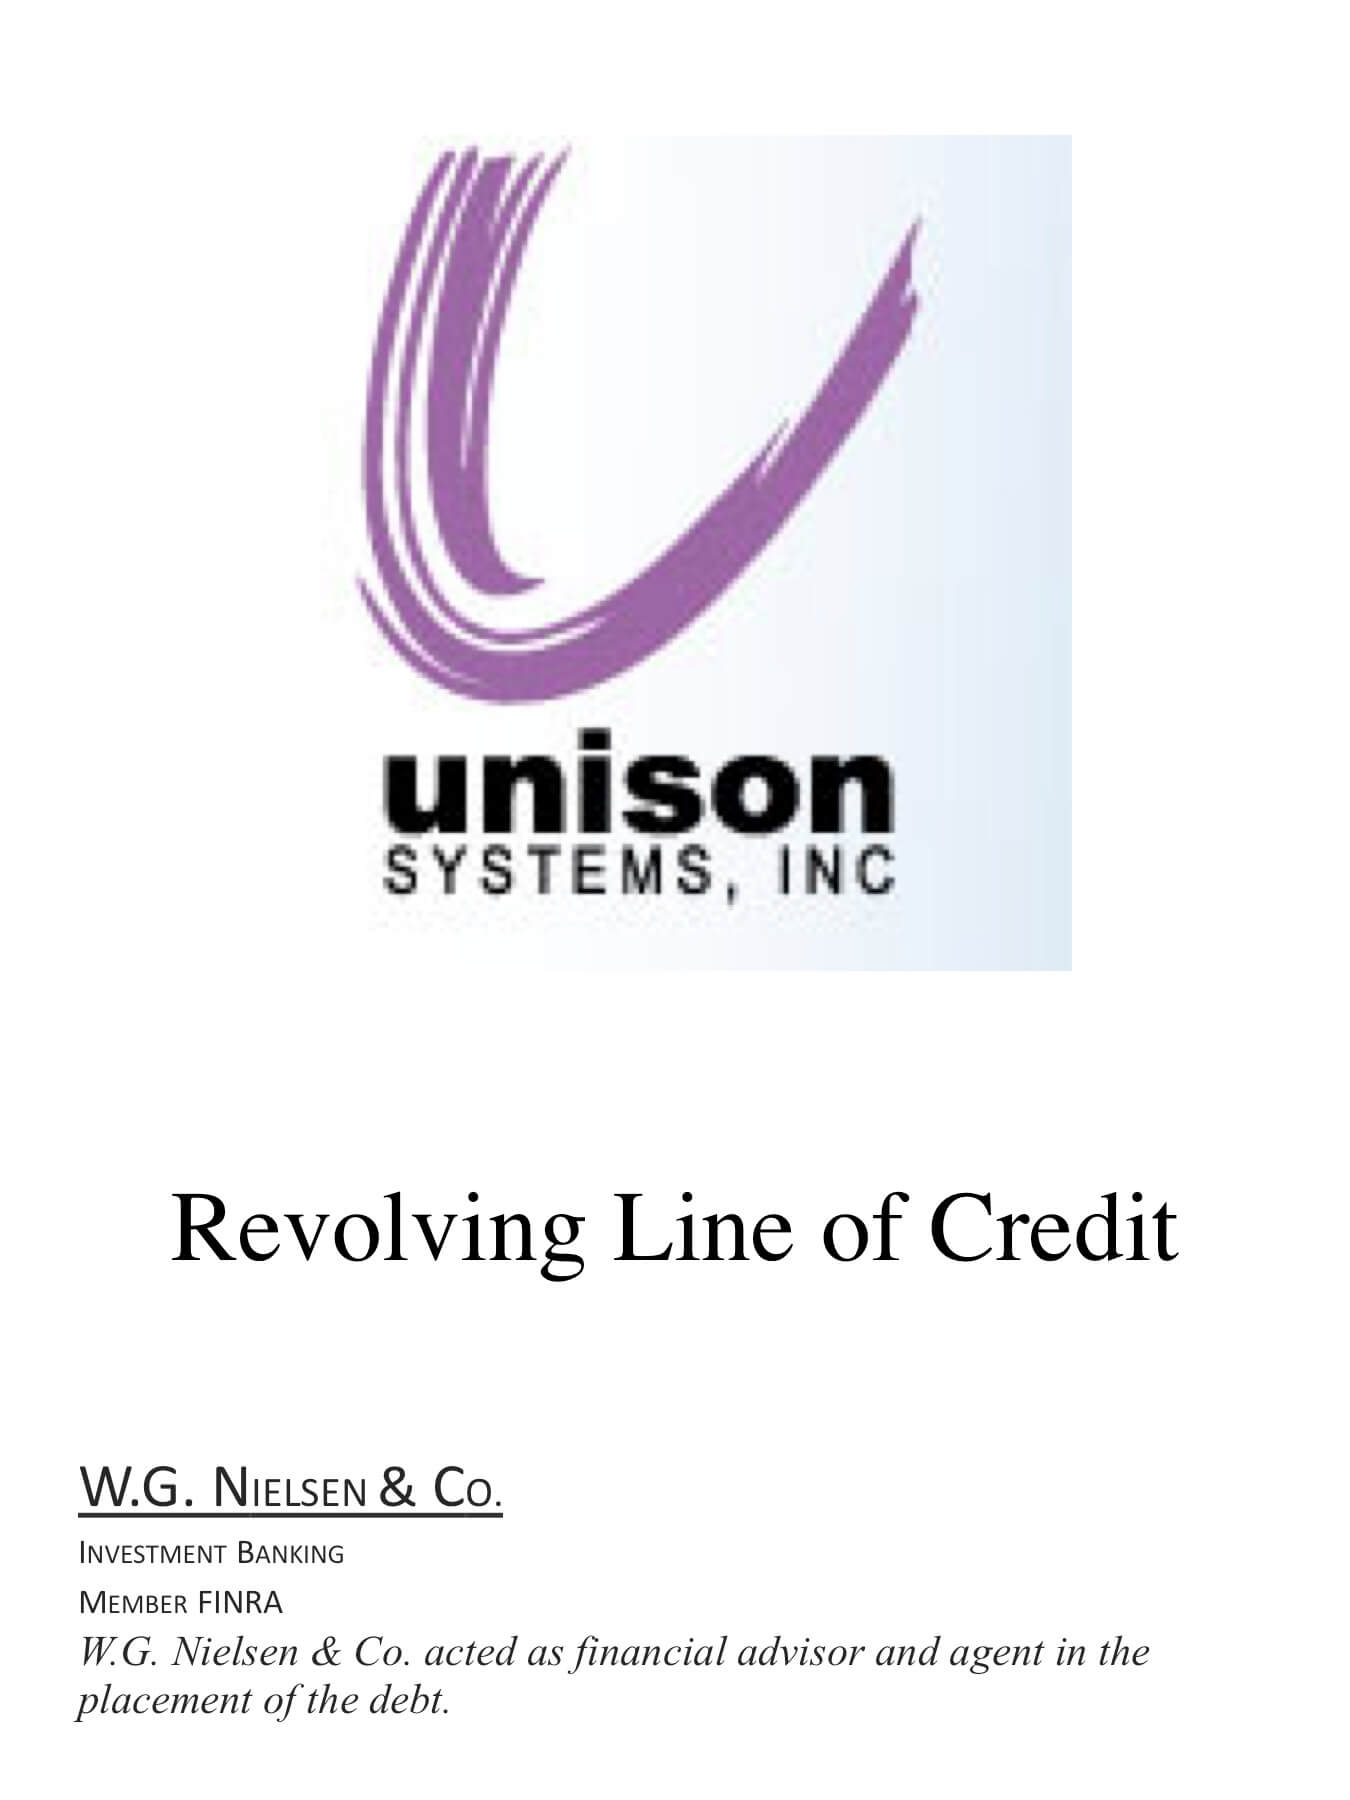 unison systems investment banking transaction